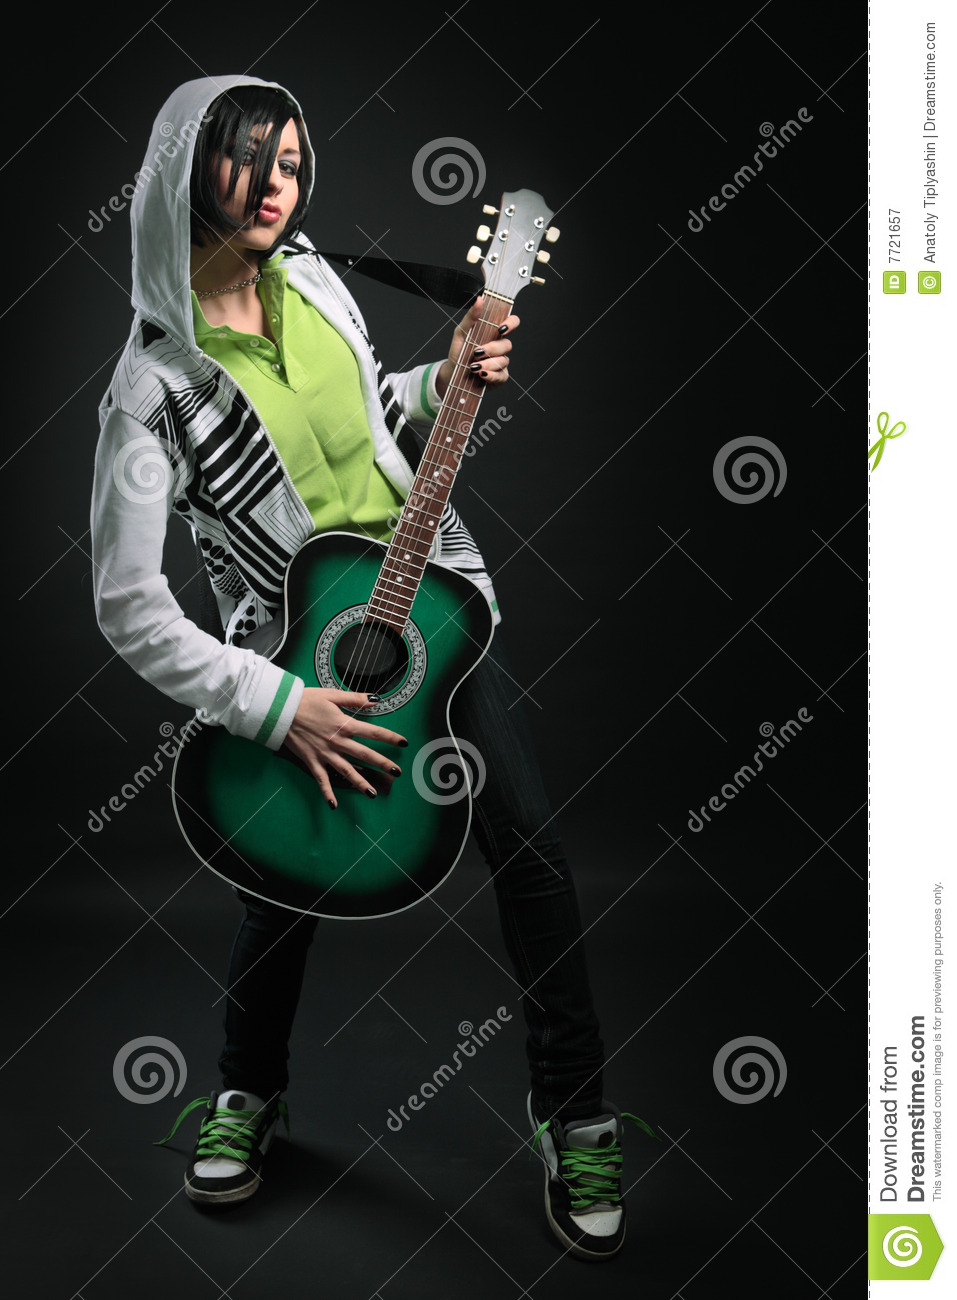 Beauty Emo Girl With Guitar Stock Image - Image of mouth